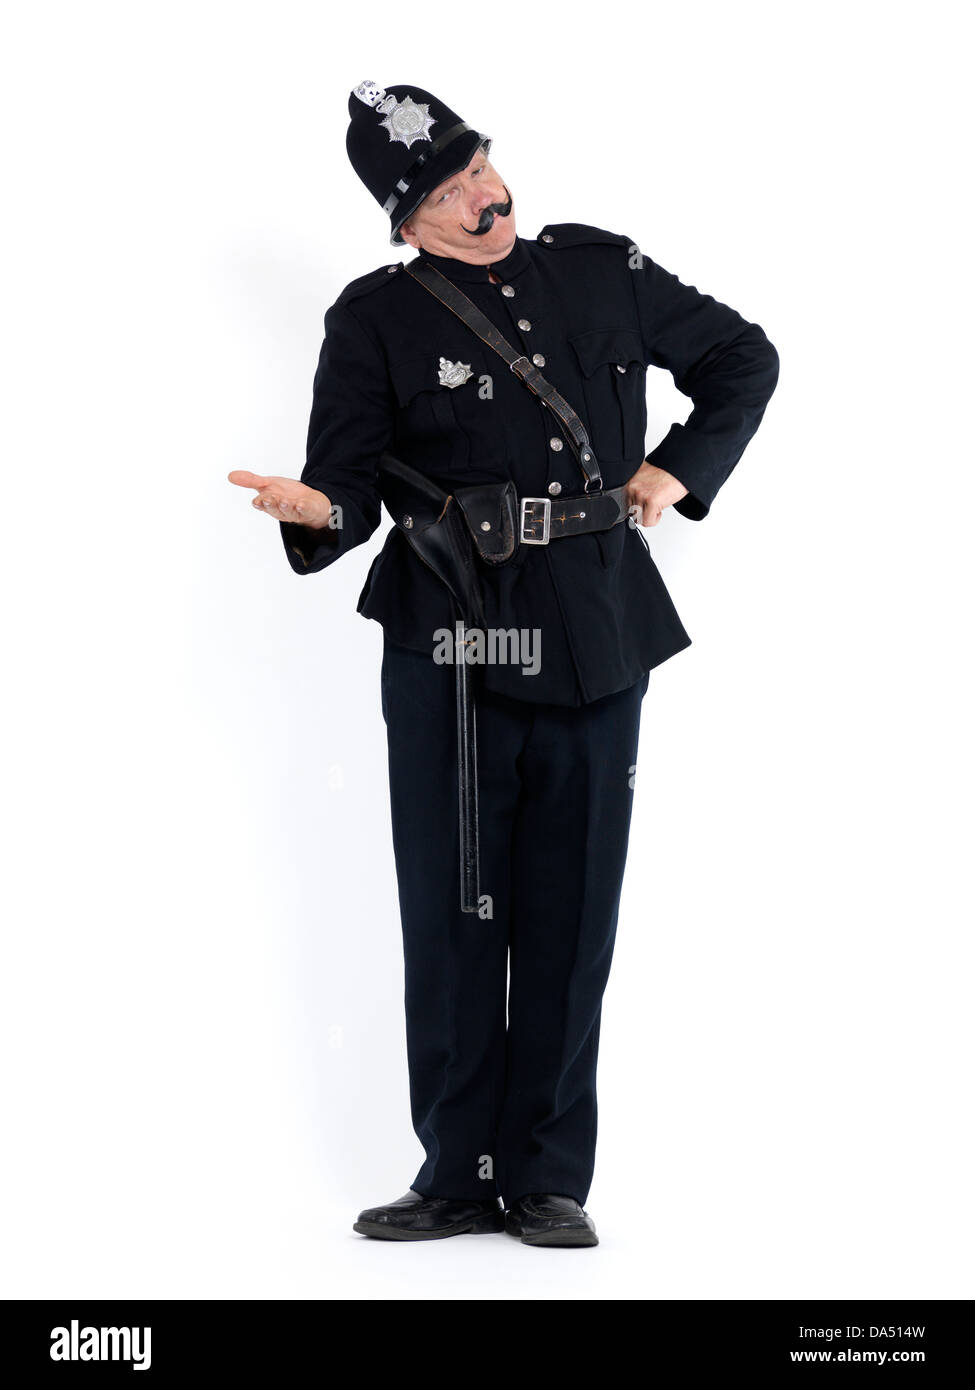 Police officer in vintage uniform with a stretched arm and serious expression demanding documents, humorous conceptual - Stock Image